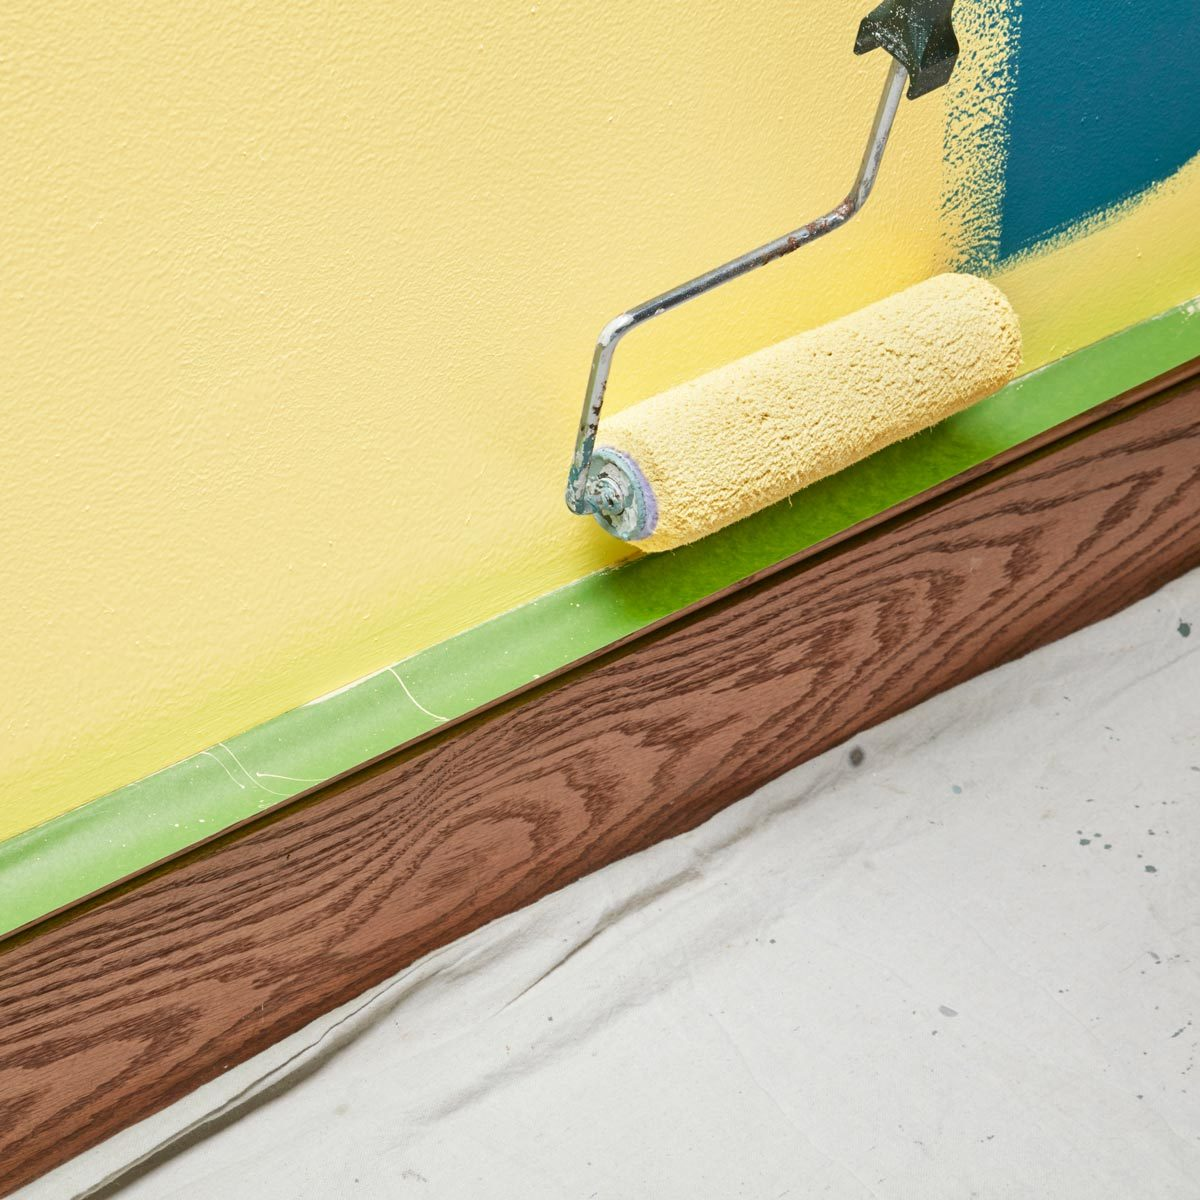 6. Shelter Baseboards from Splatter